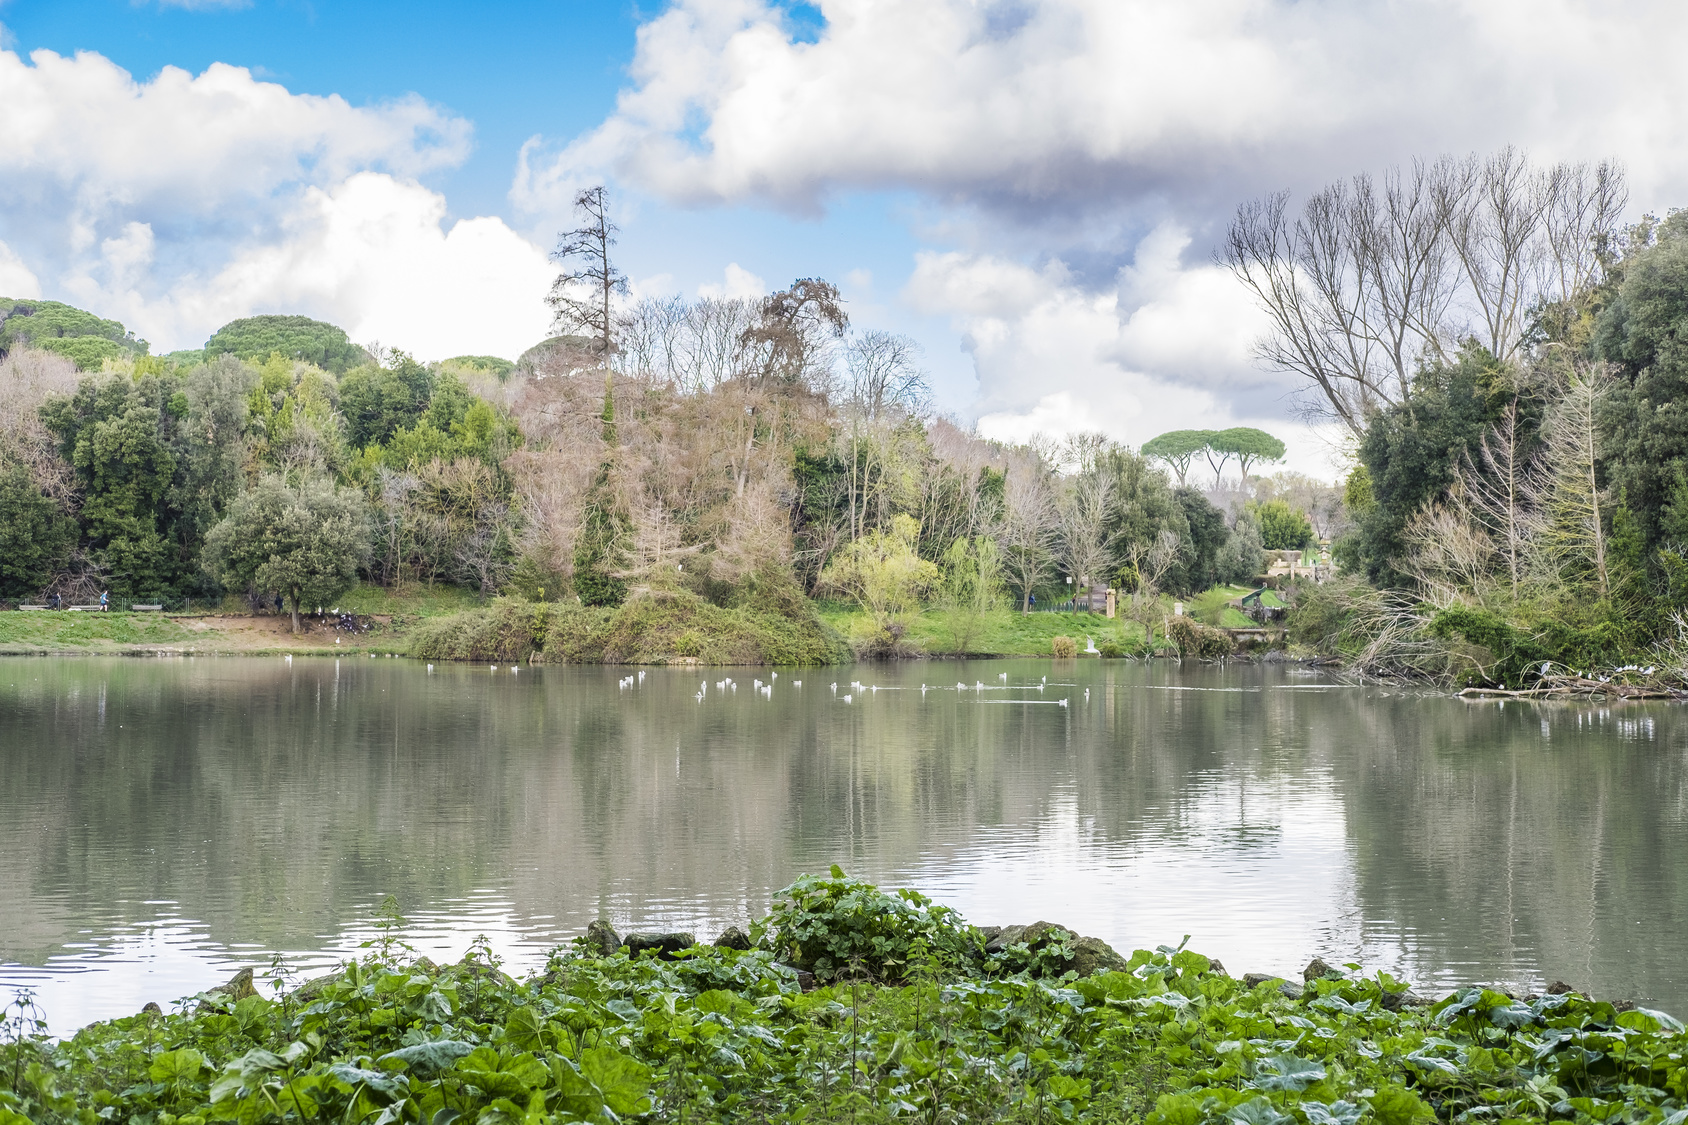 Views of the Lake of the Belvedere - Villa Pamphili (Rome)